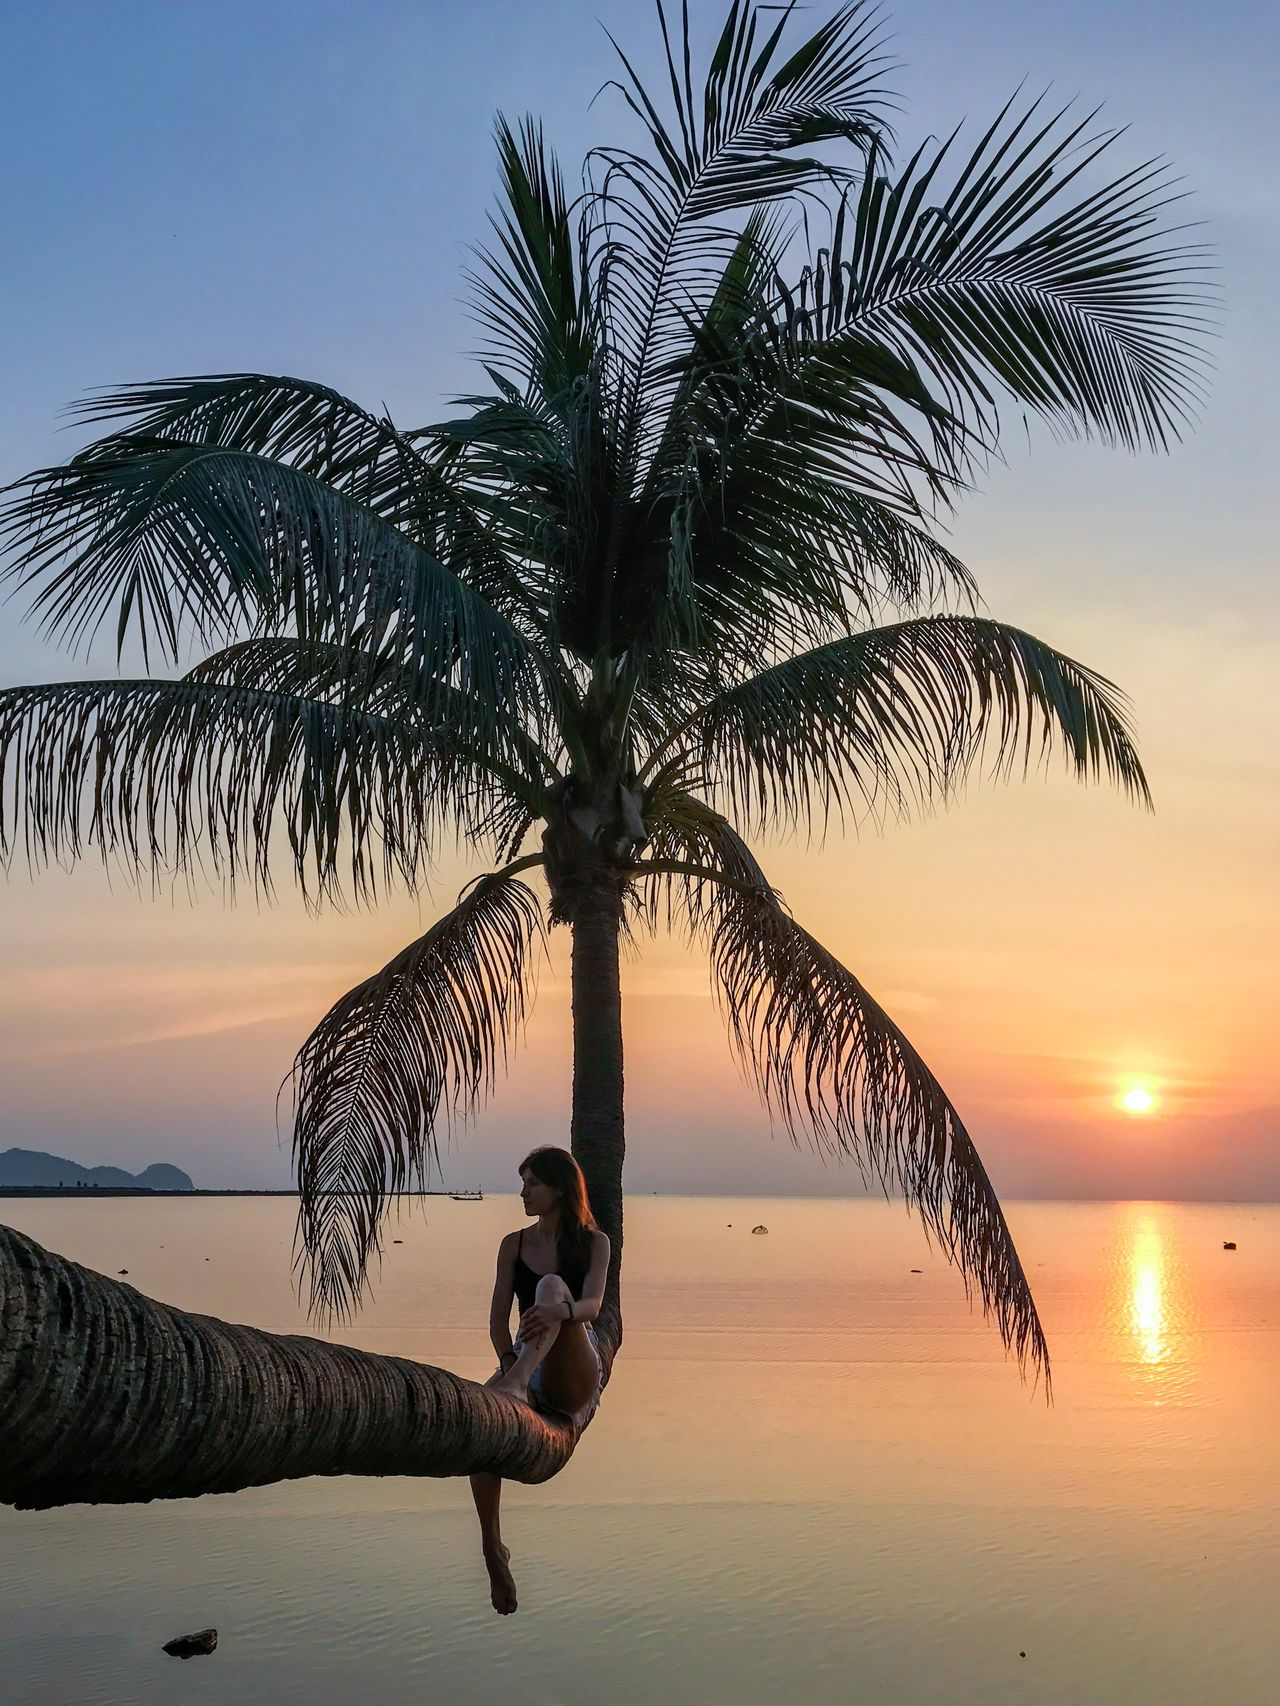 Adult Adults Only Beach Beauty In Nature Good Vibes Horizon Over Water Idyllic Nature One Person One Woman Only Outdoors Palm Tree People Photography Themes Relaxing Scenics Sea Sitting Sky Sunset Tranquility Tree Vacations Water Young Women